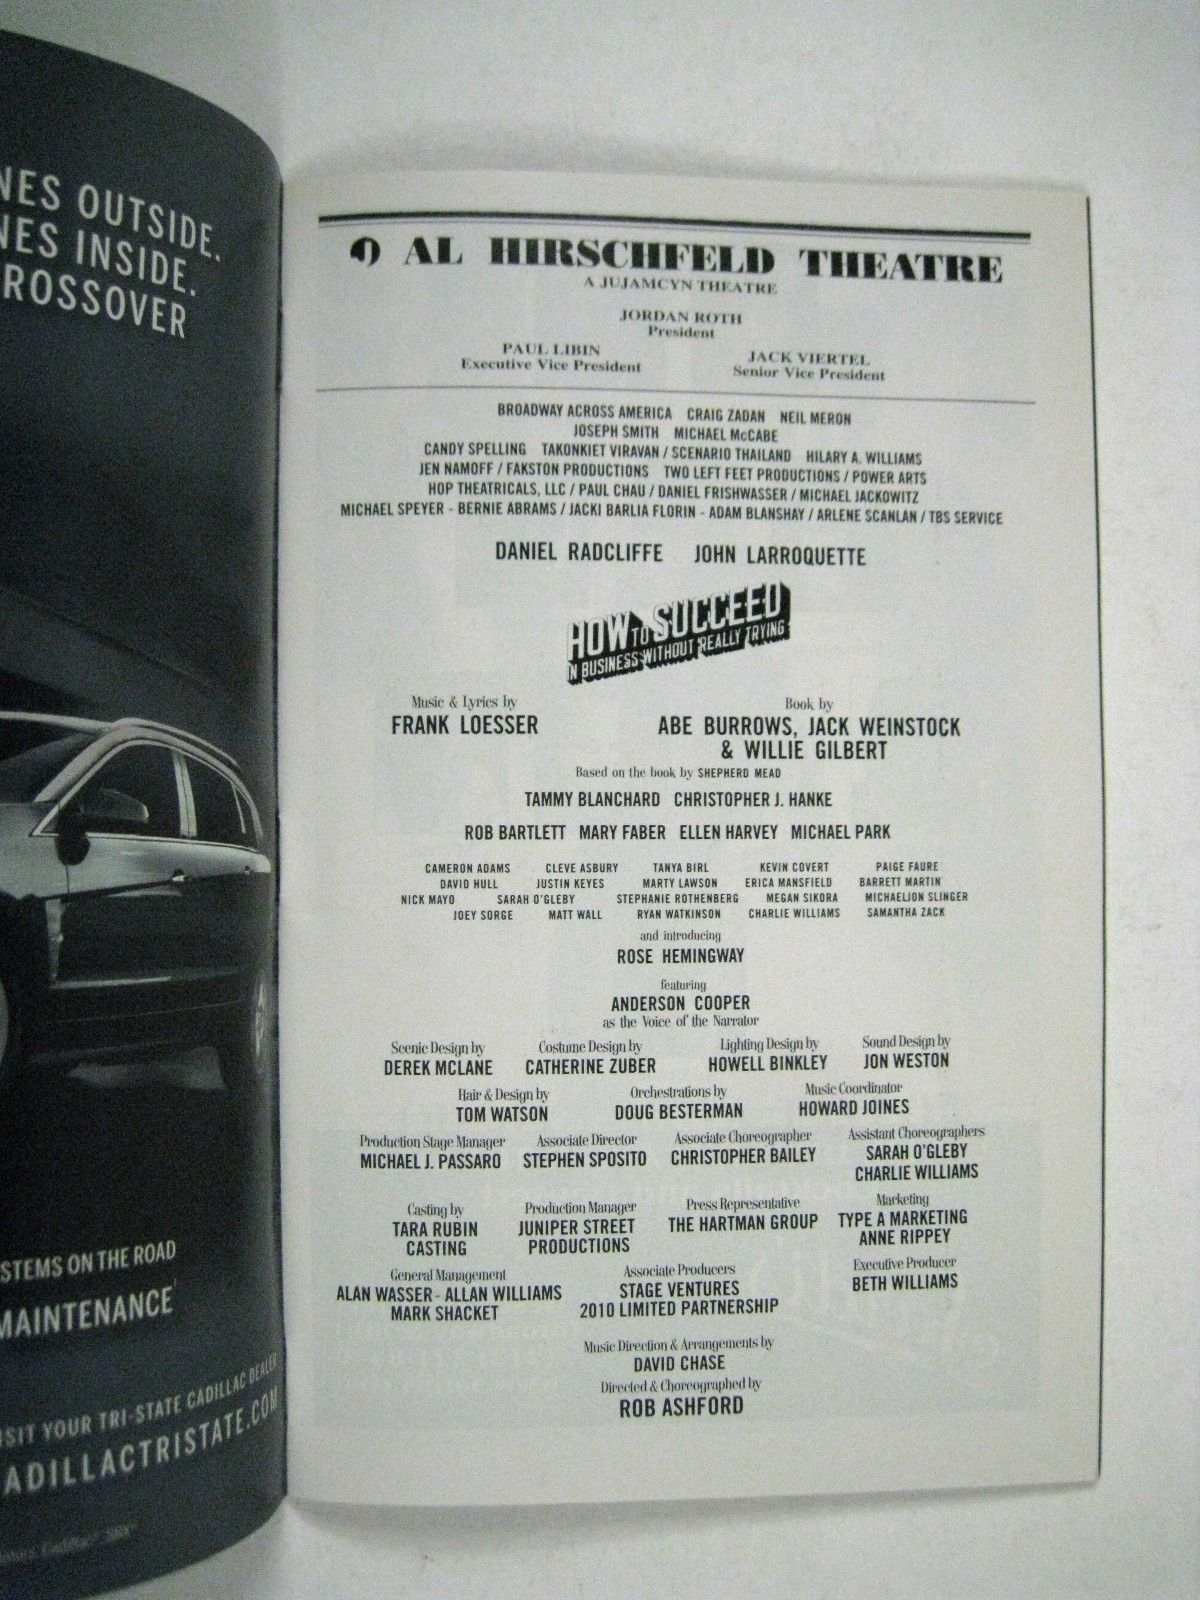 How to Succeed Business Playbill 2011 Hirschfield Theatre Radcliffe Larroquette